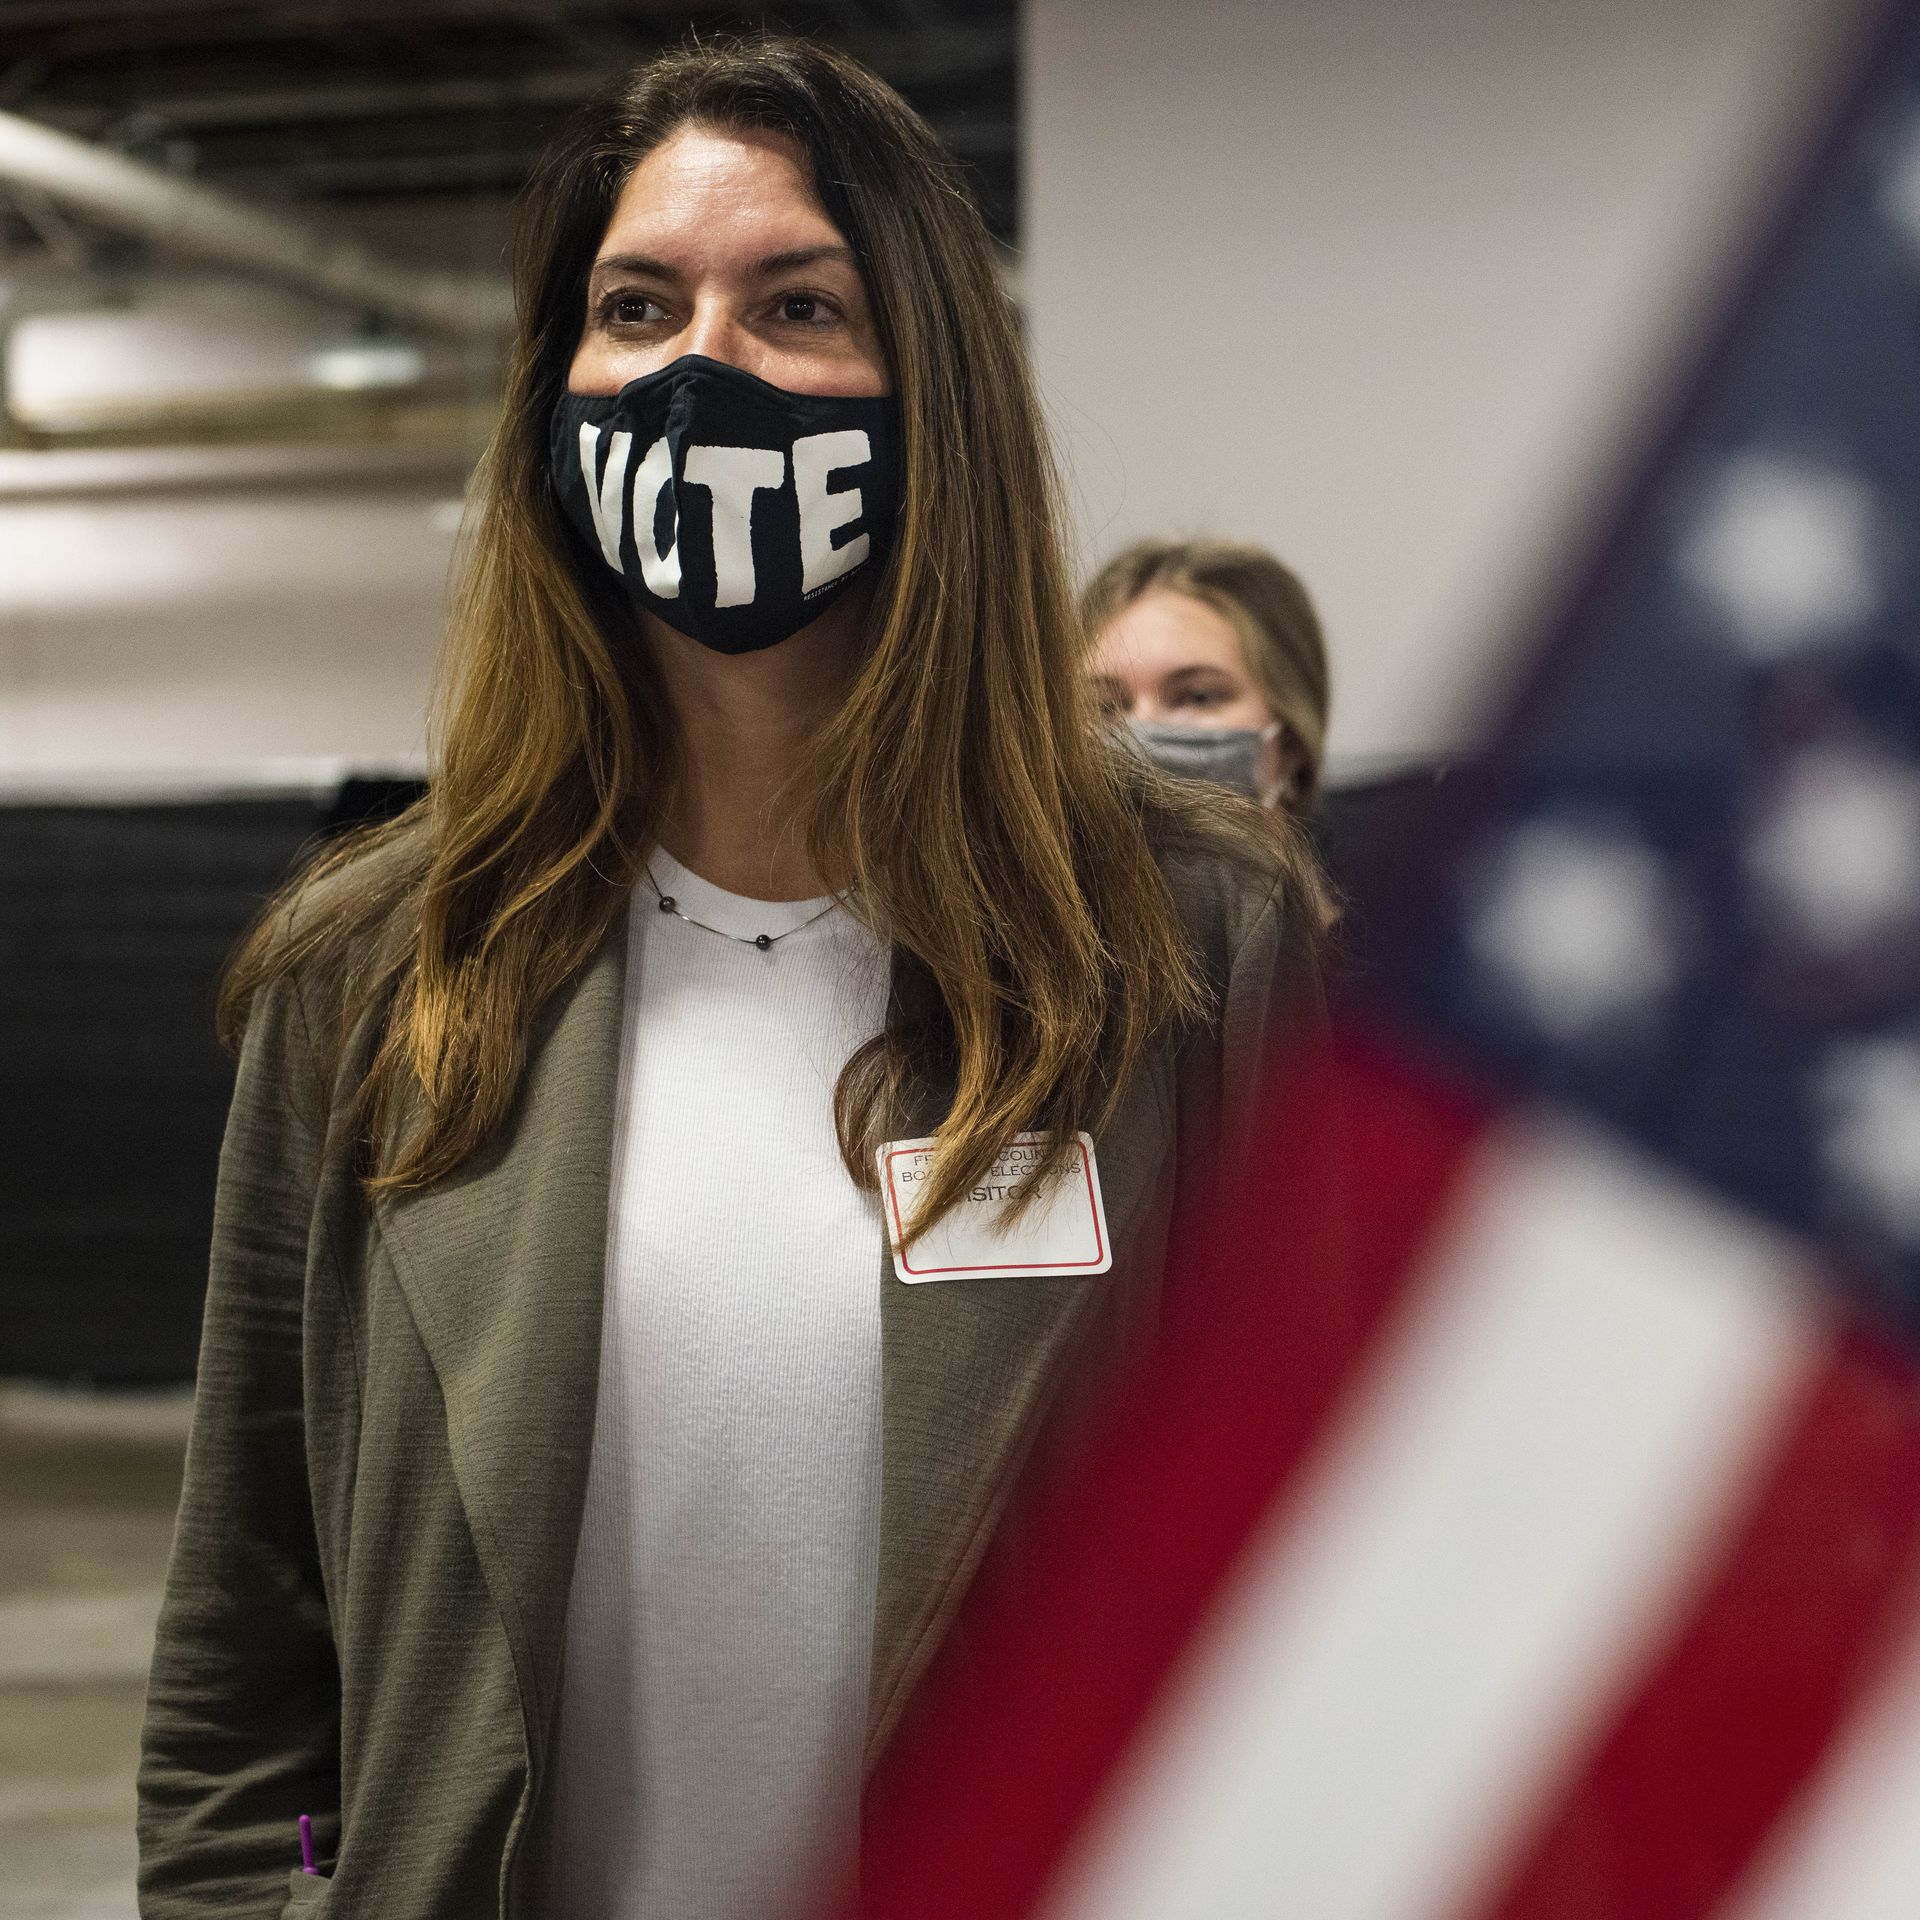 """A pollworker wears a mask reading """"VOTE"""" at a voting location."""